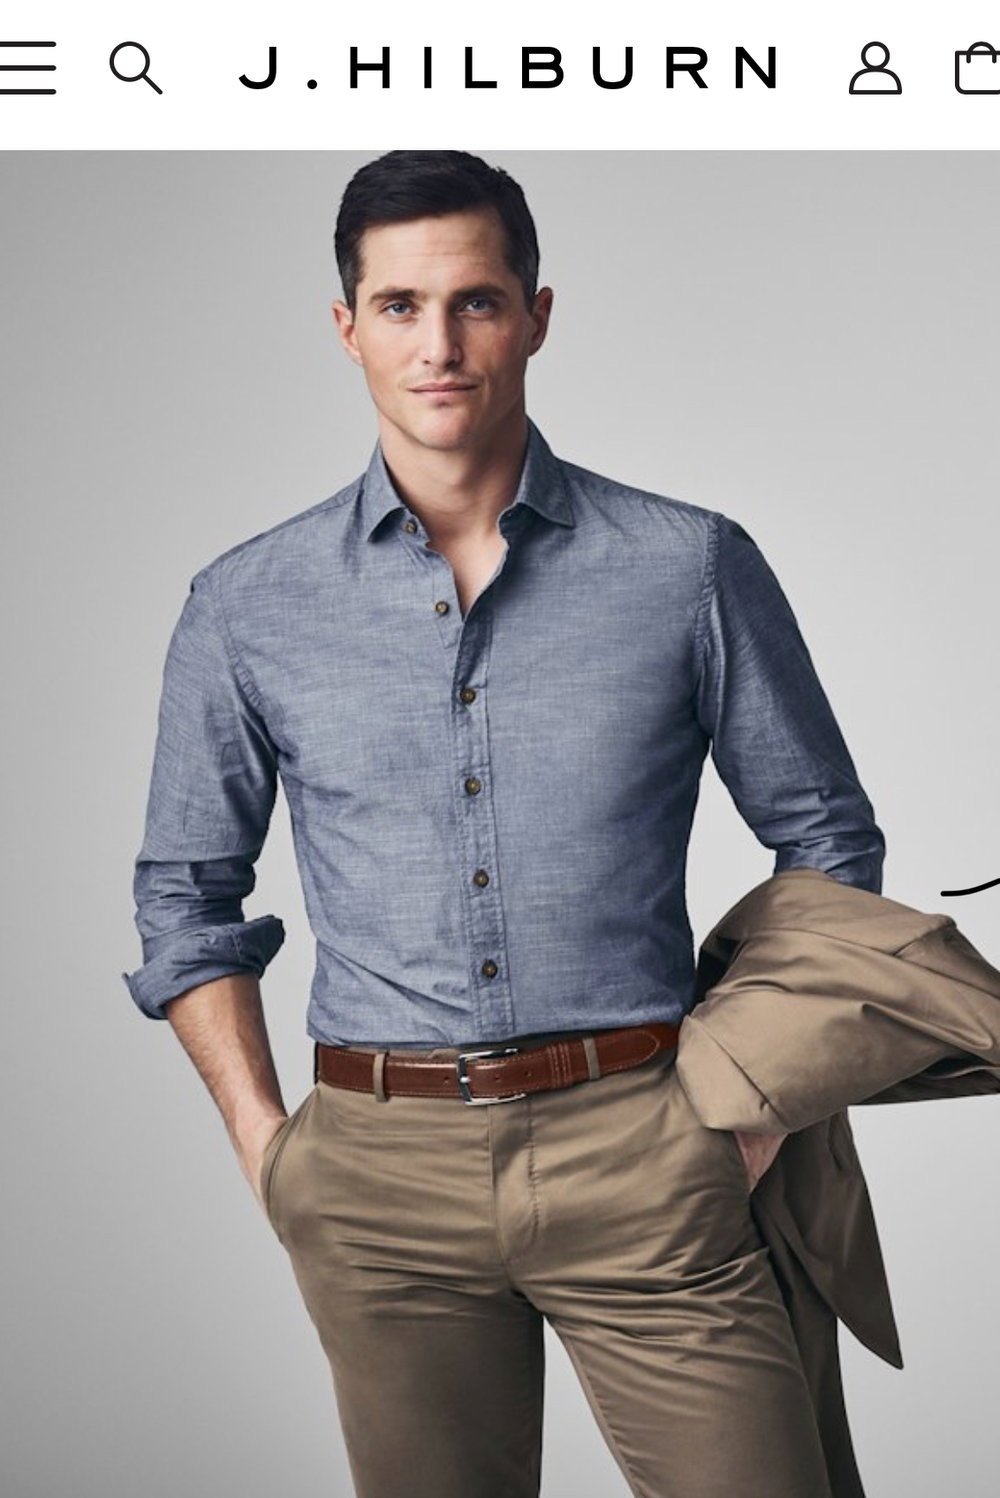 Get your very own custom-made men's shirt from J. Hilburn. You pick the fabric, they take your measurements, and voila!   Value: $150